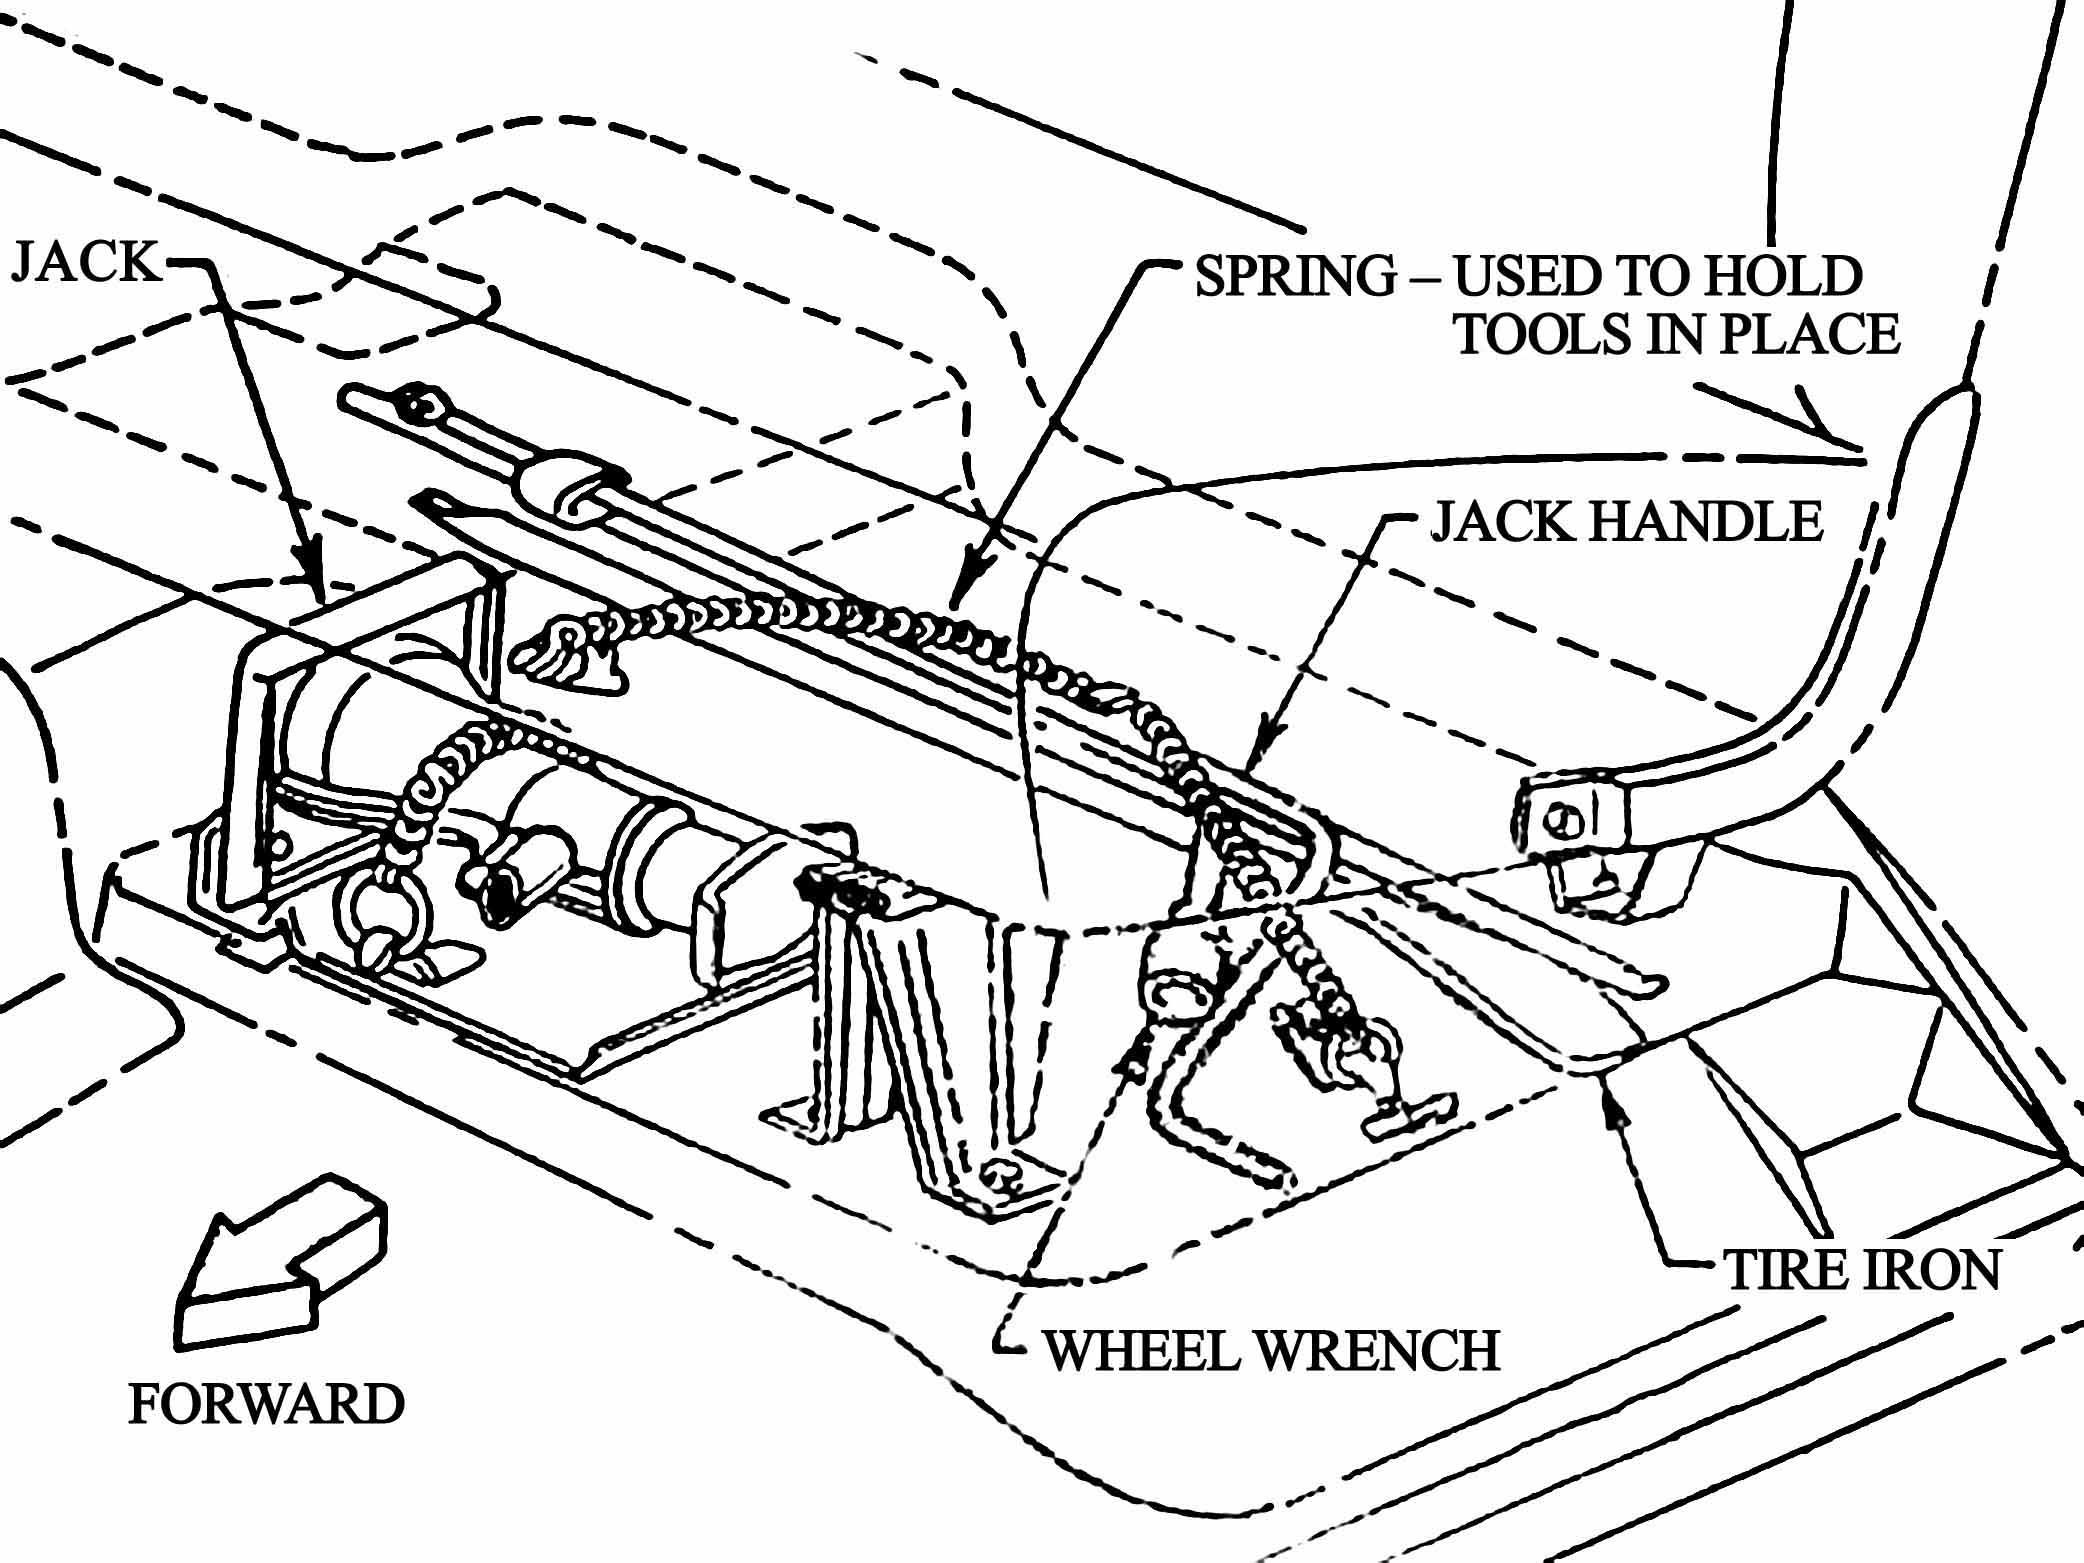 c10 jack storage illustration